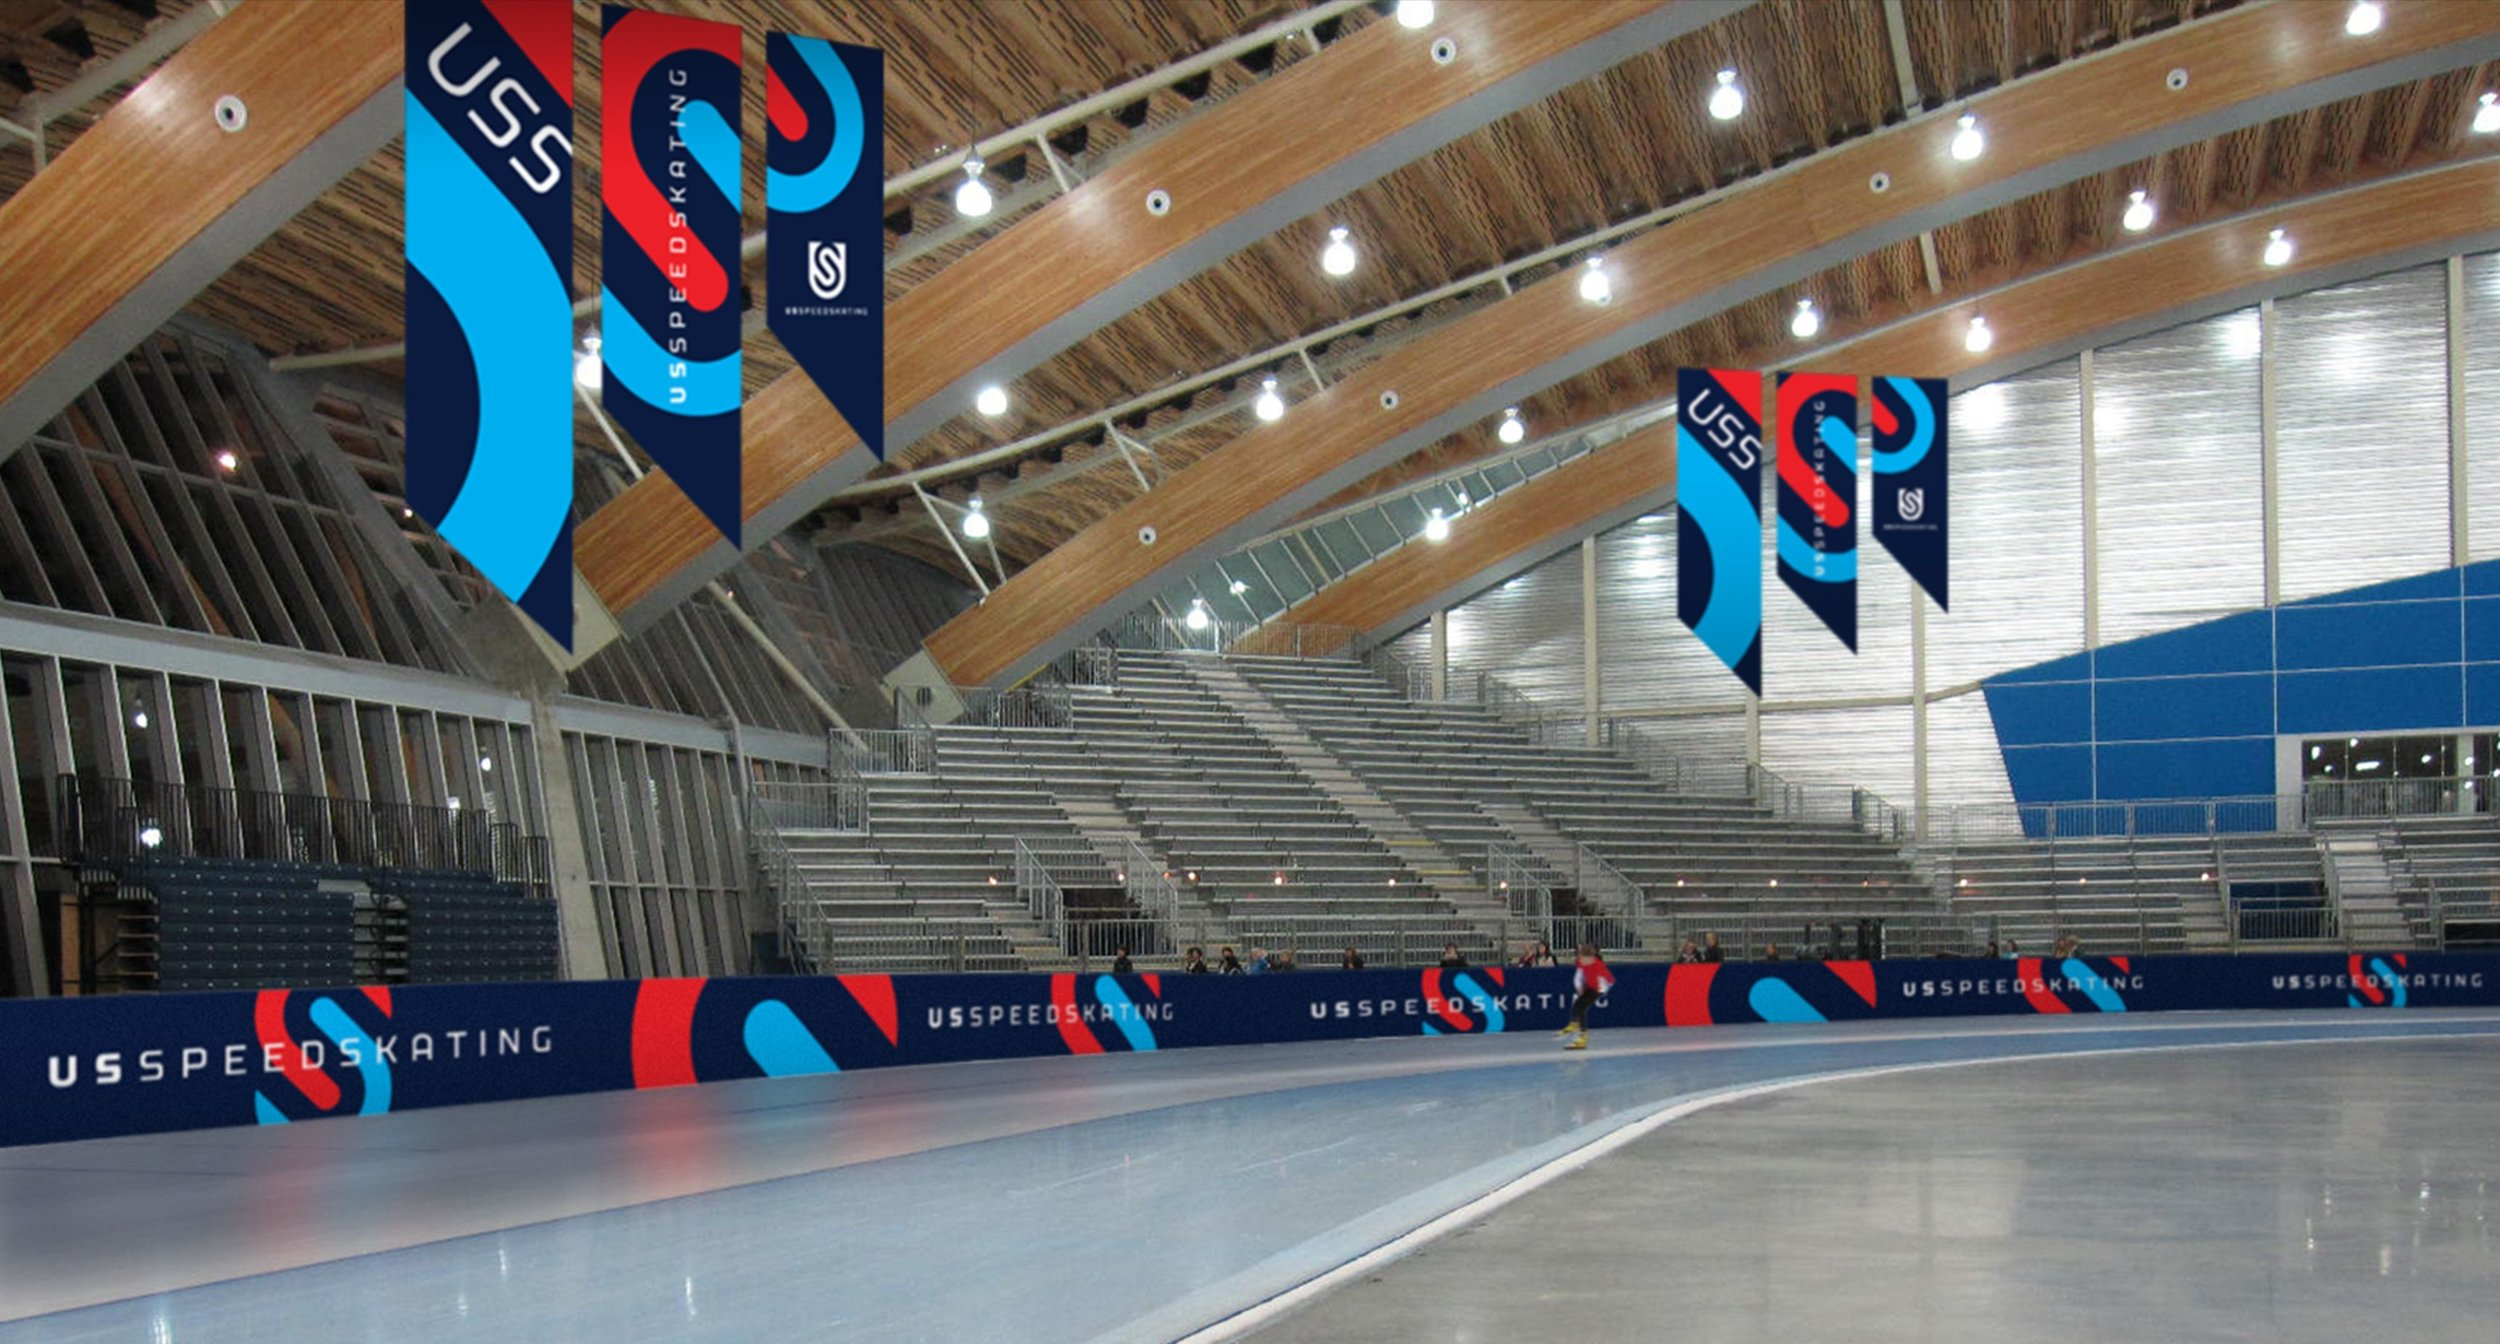 U.S. Speedskating Banners and Track